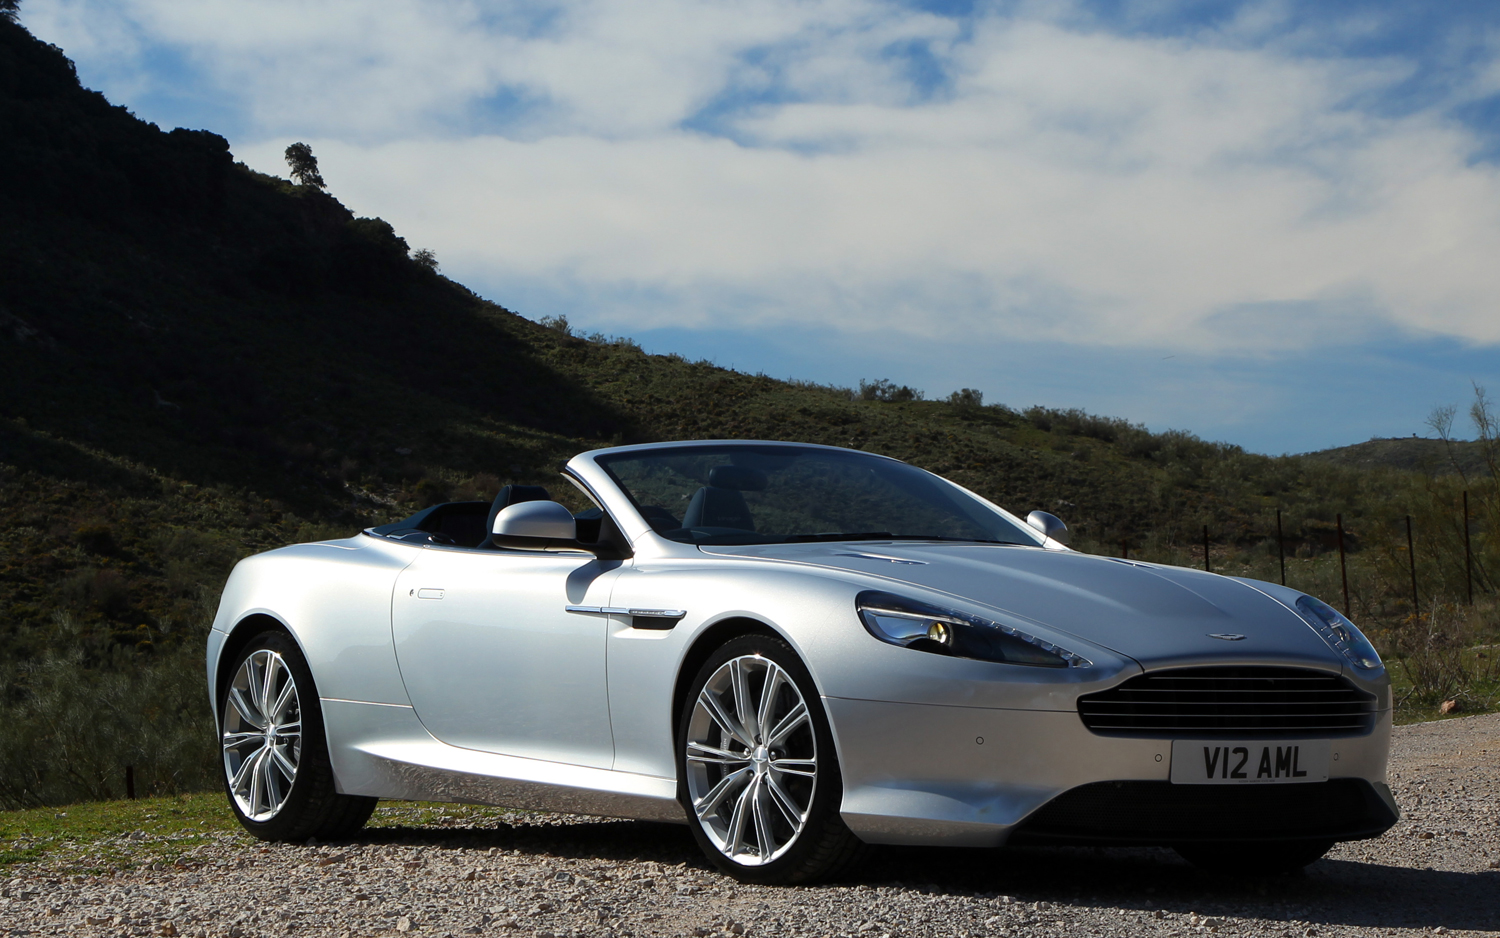 2017 Aston Martin Virage photo - 1